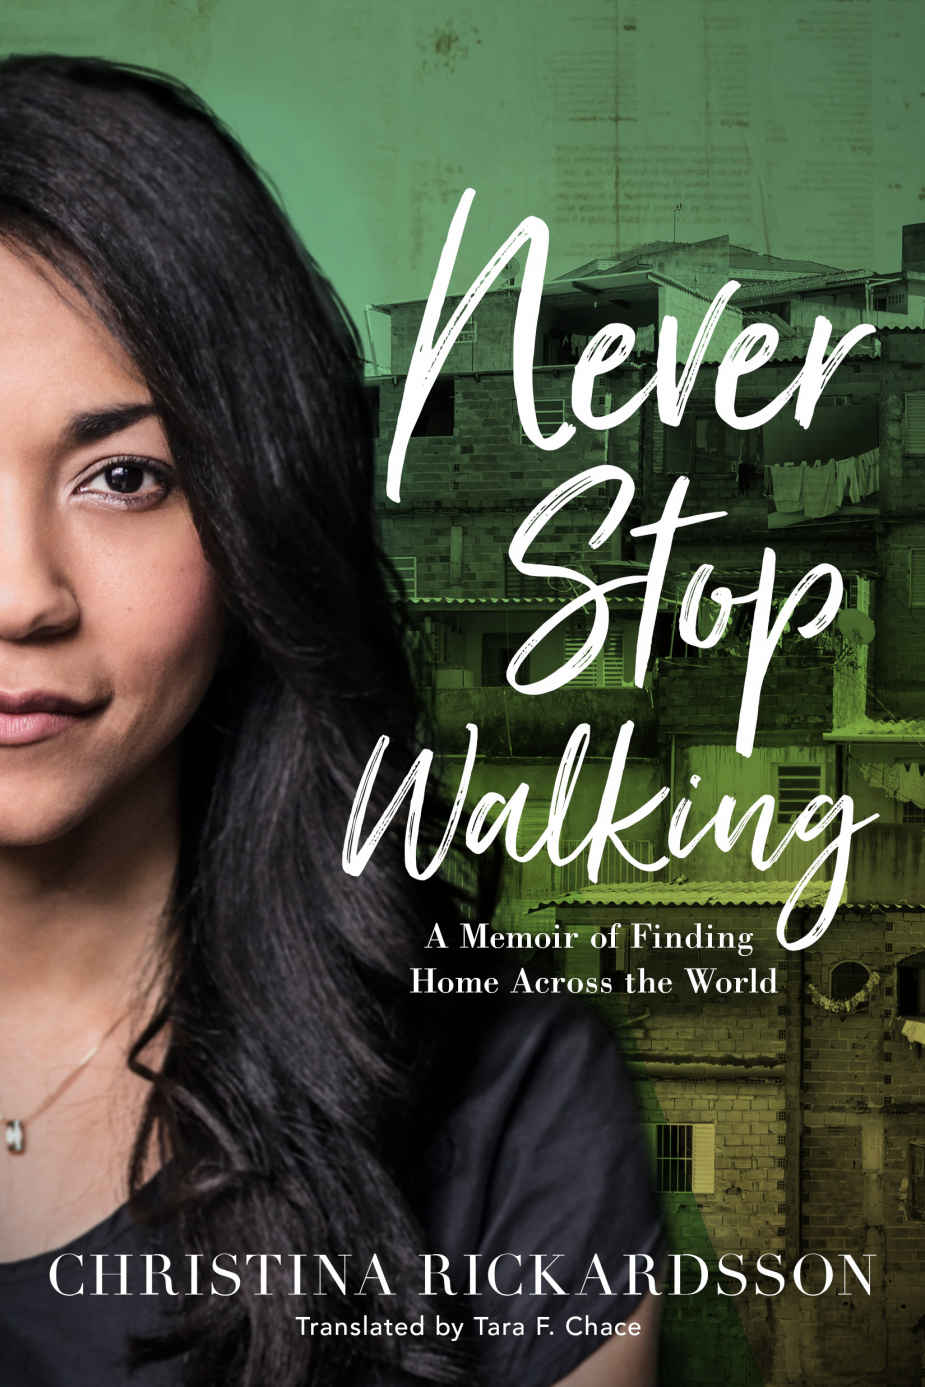 Never Stop Walking: A Memoir of Finding Home Across the World - Christina Rickardsson [kindle] [mobi]